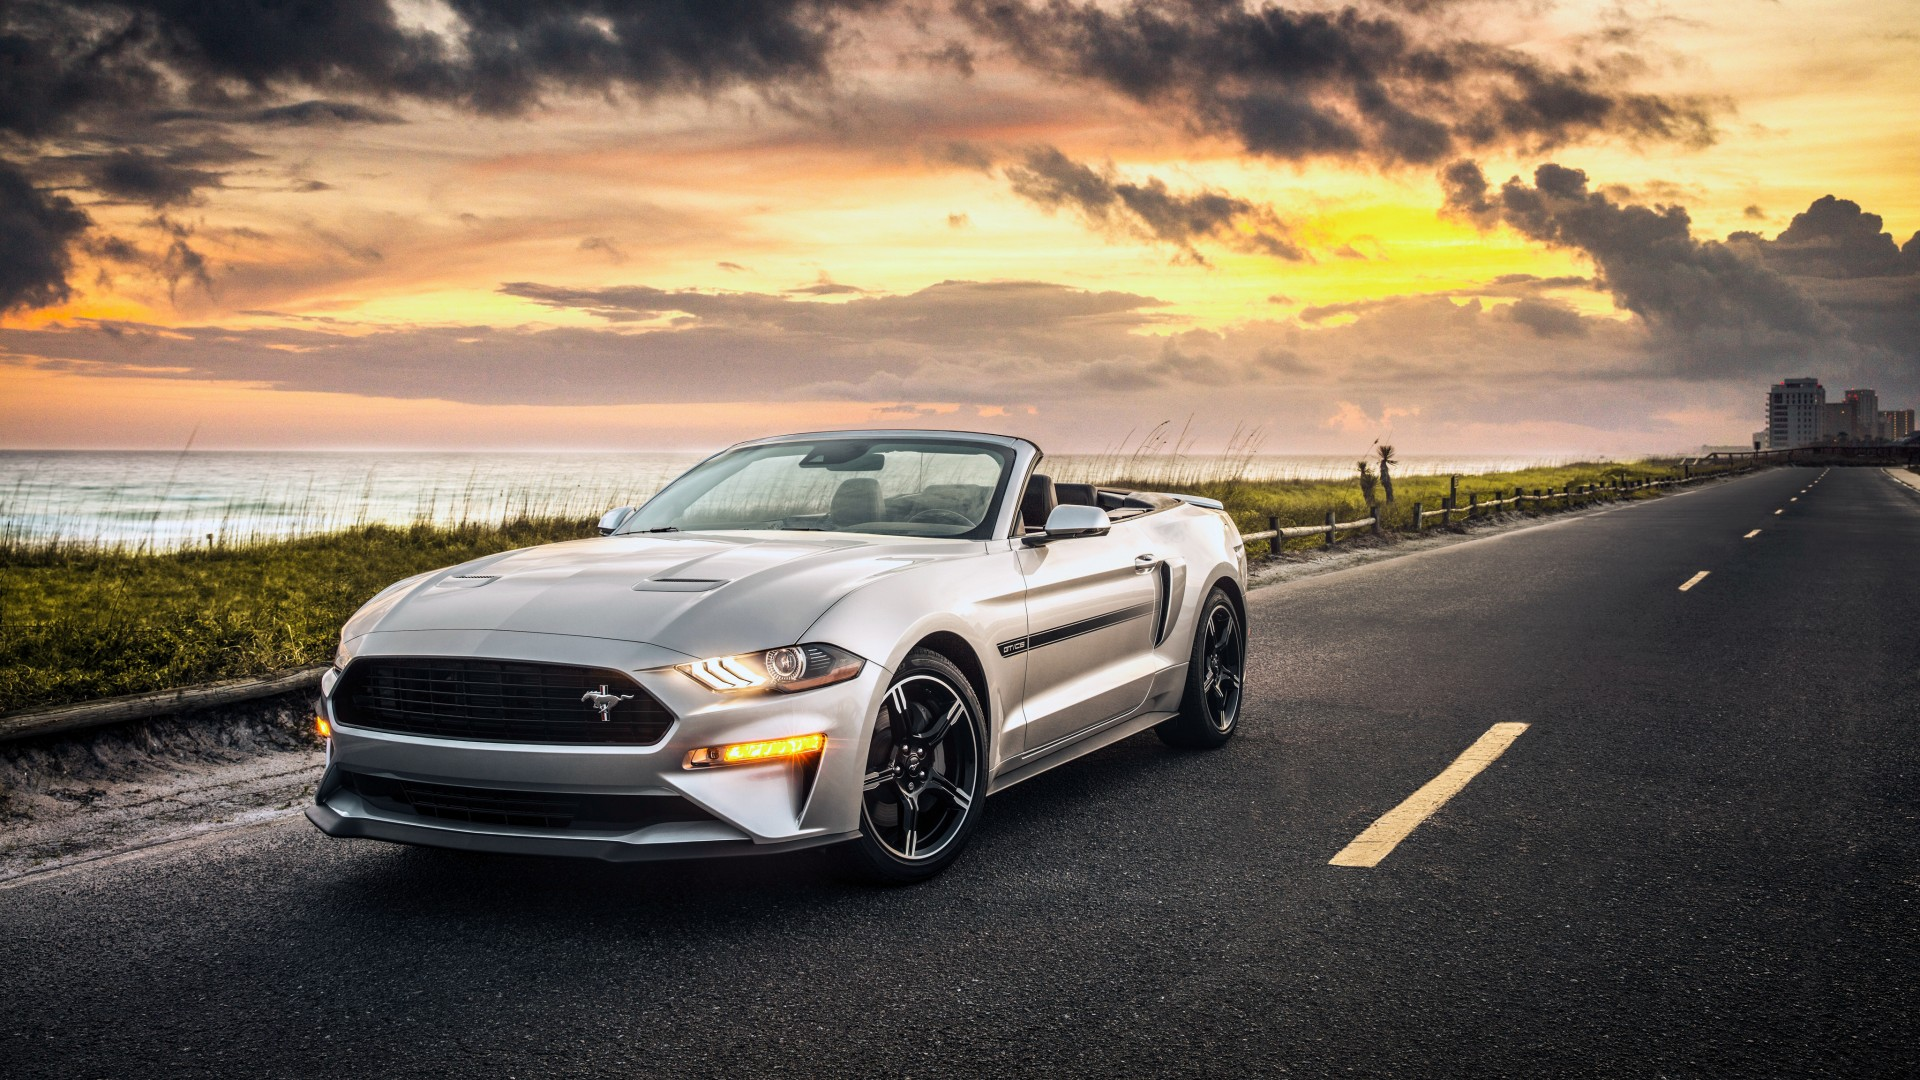 2019 Ford Mustang GT Convertible California 4K Wallpaper ...